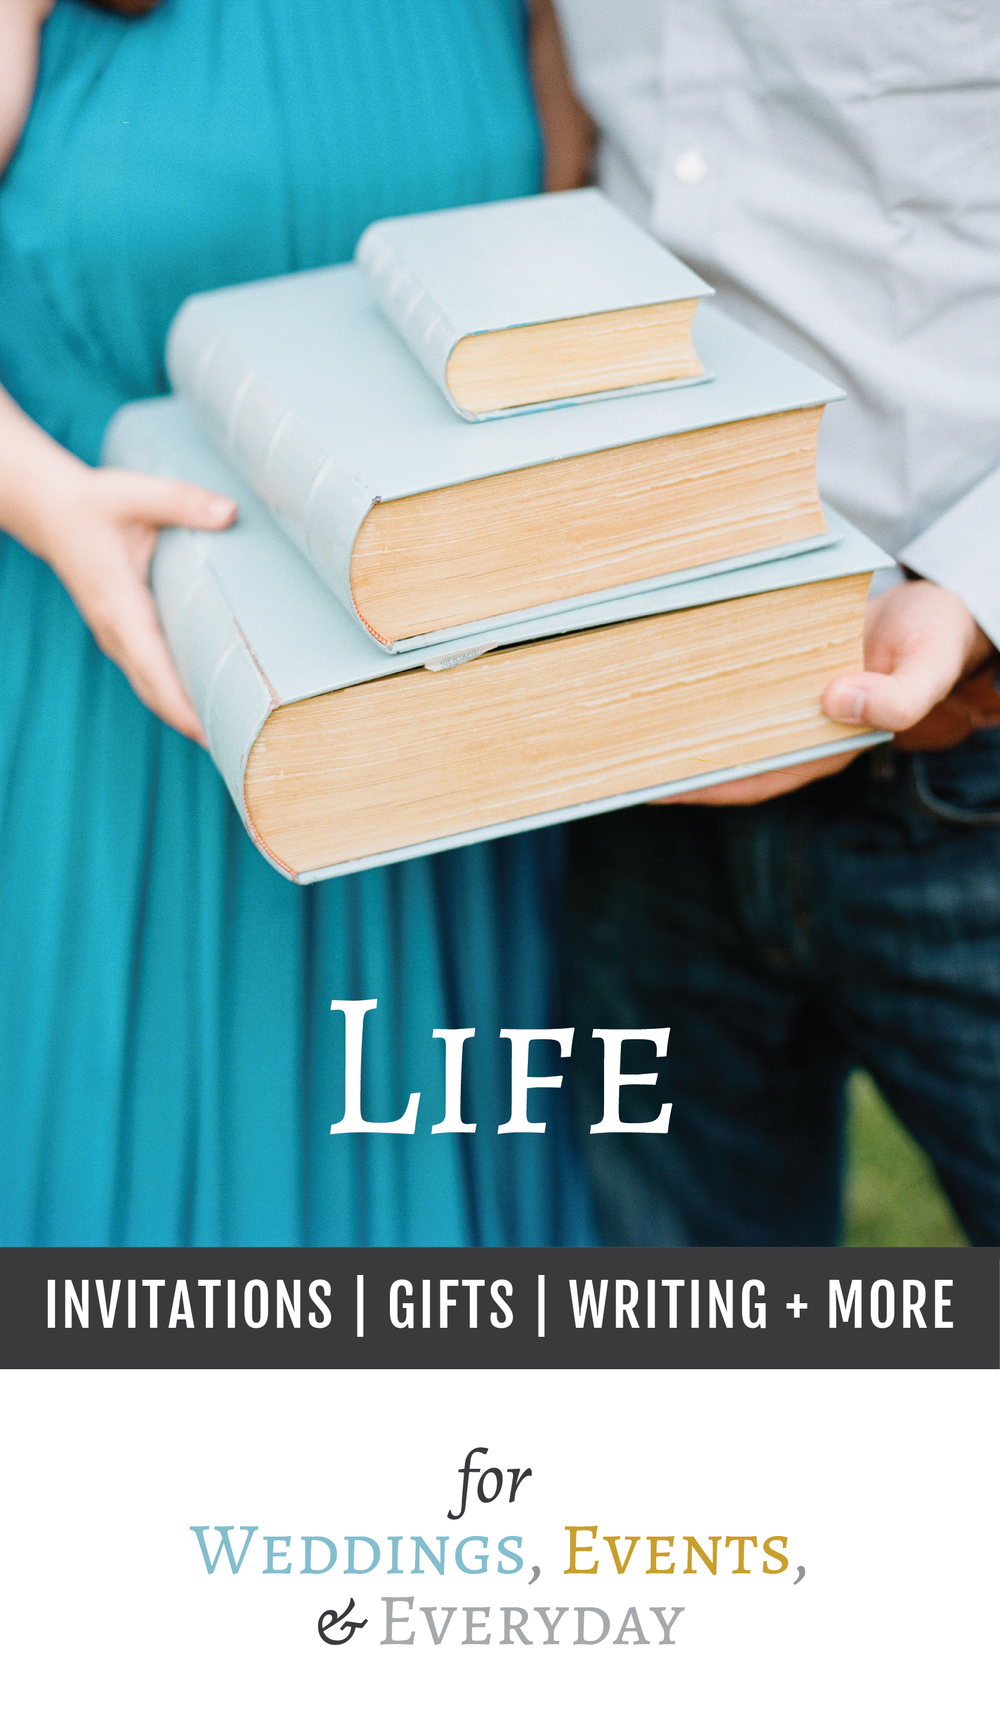 Greatest Story Creative for Your Life: Invitations, Decor, Writing, Gifts, and More for Weddings, Events, and Everyday Projects